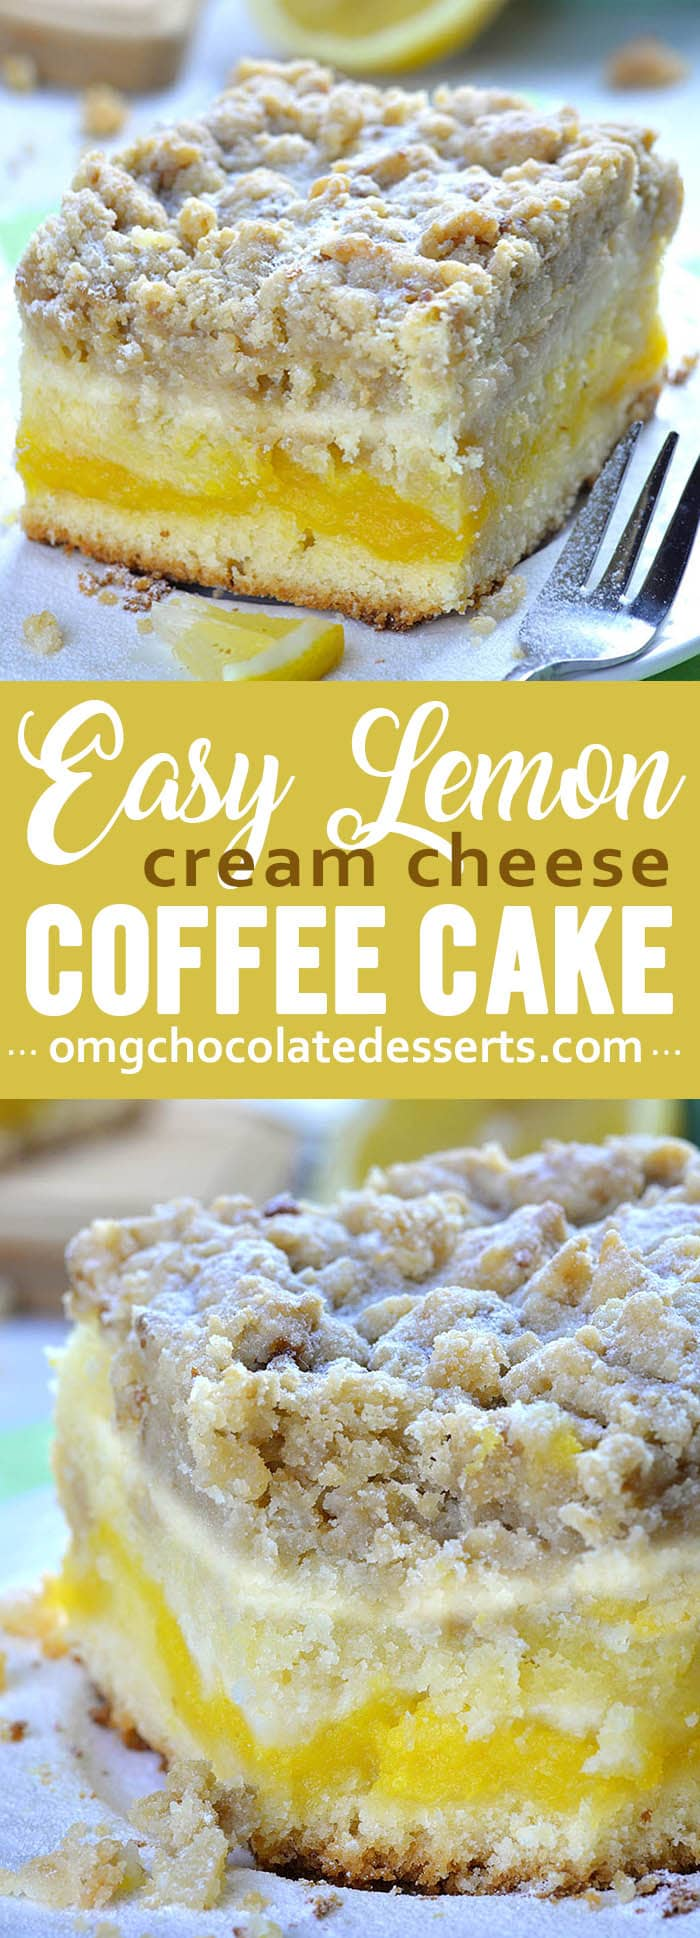 Lemon Coffee Cake tender and fluffy cake is super moist. It has a tart lemon curd layer in the center, cheesecake layer on top and irresistible, crunchy and buttery crumb topping!